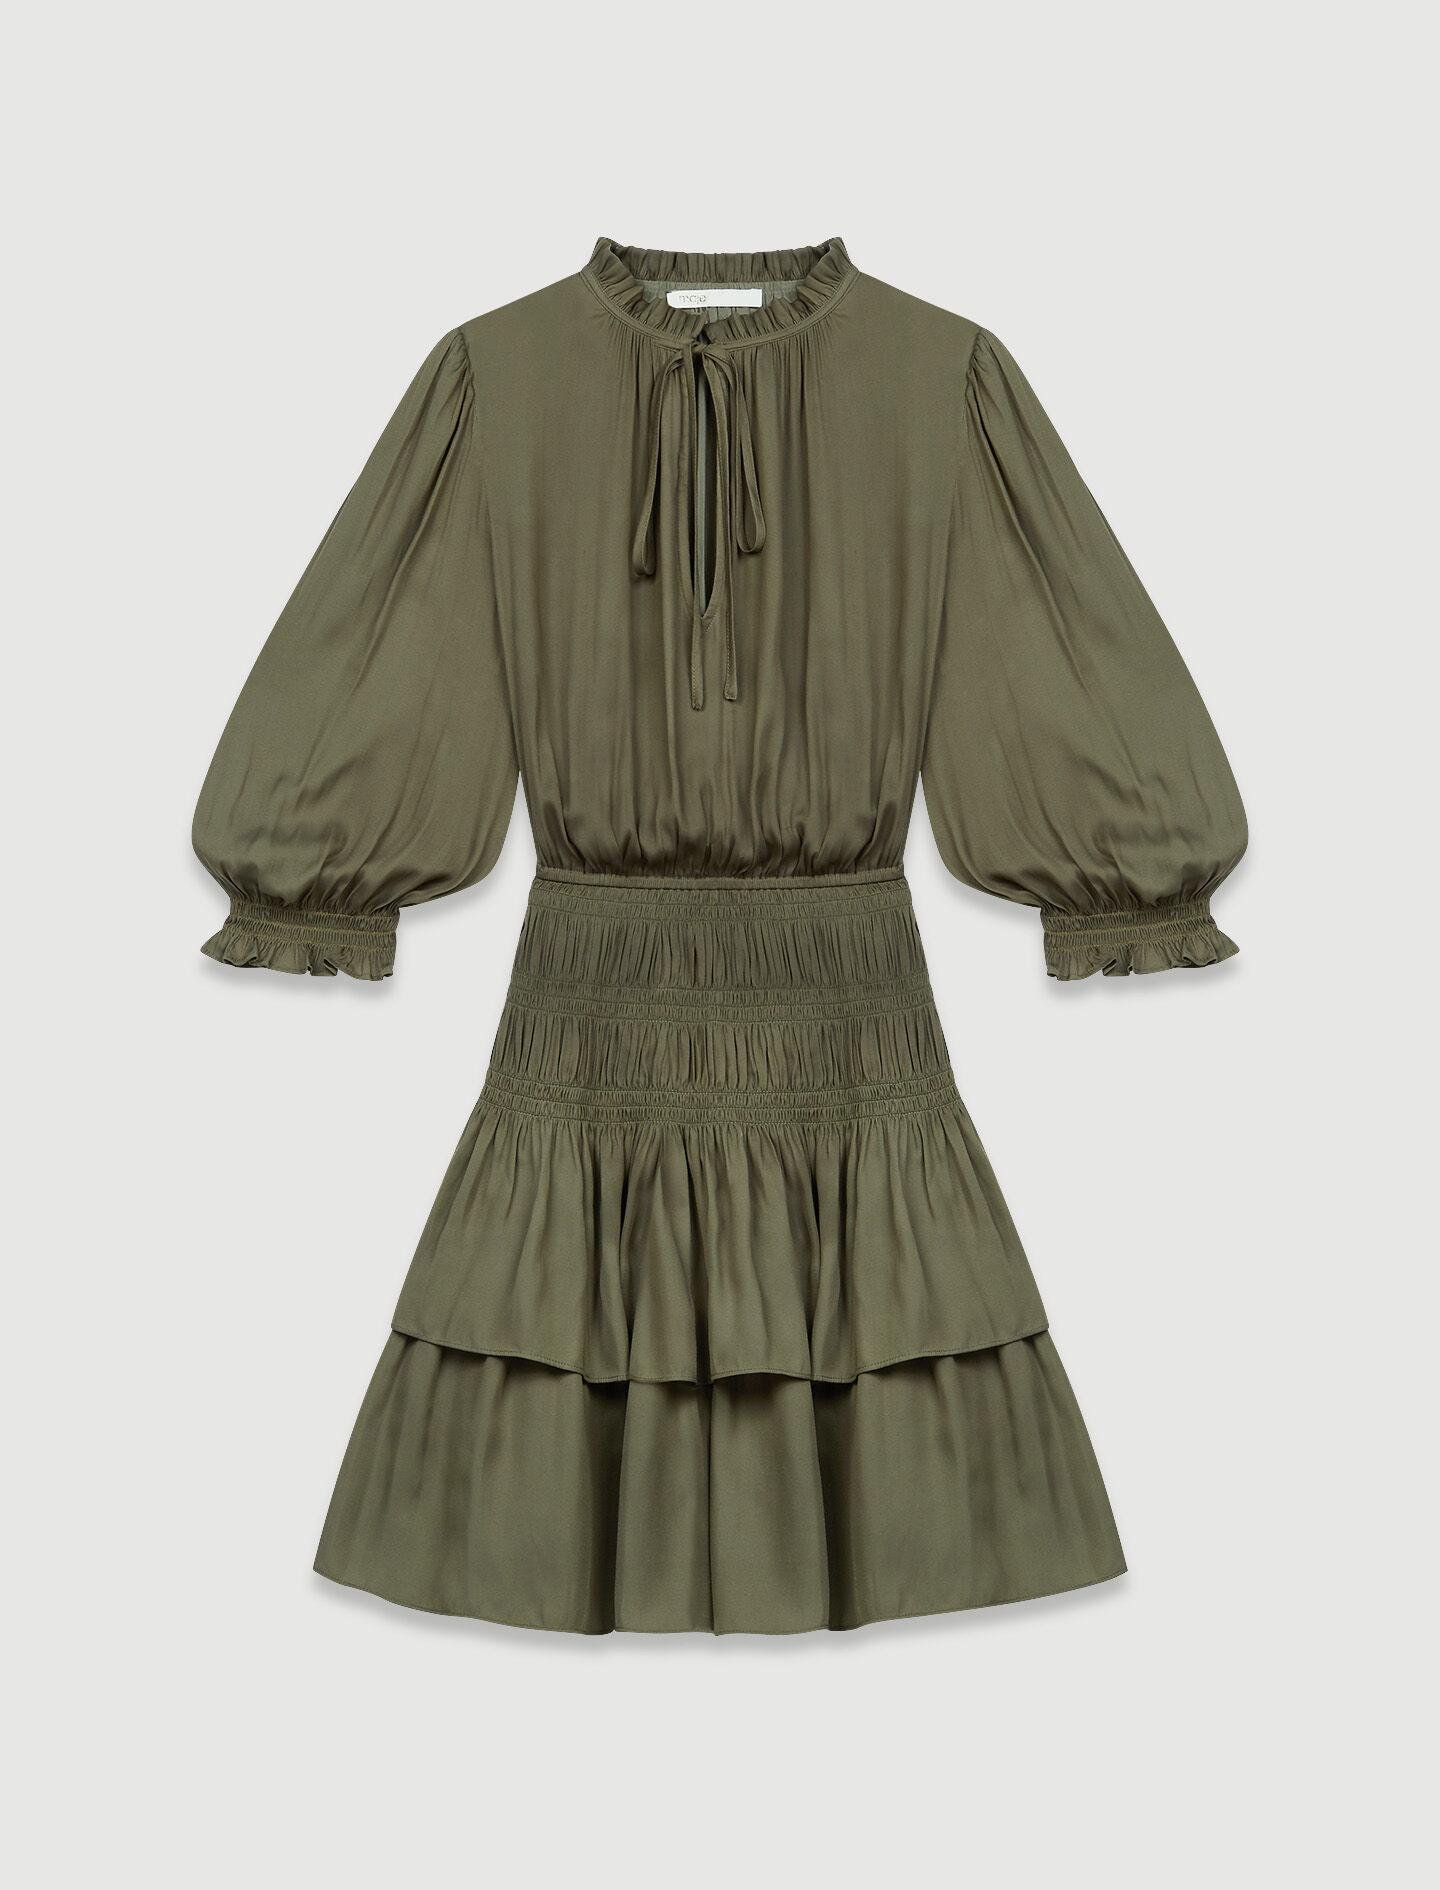 SATIN DRESS WITH SMOCKING AND RUFFLES 5